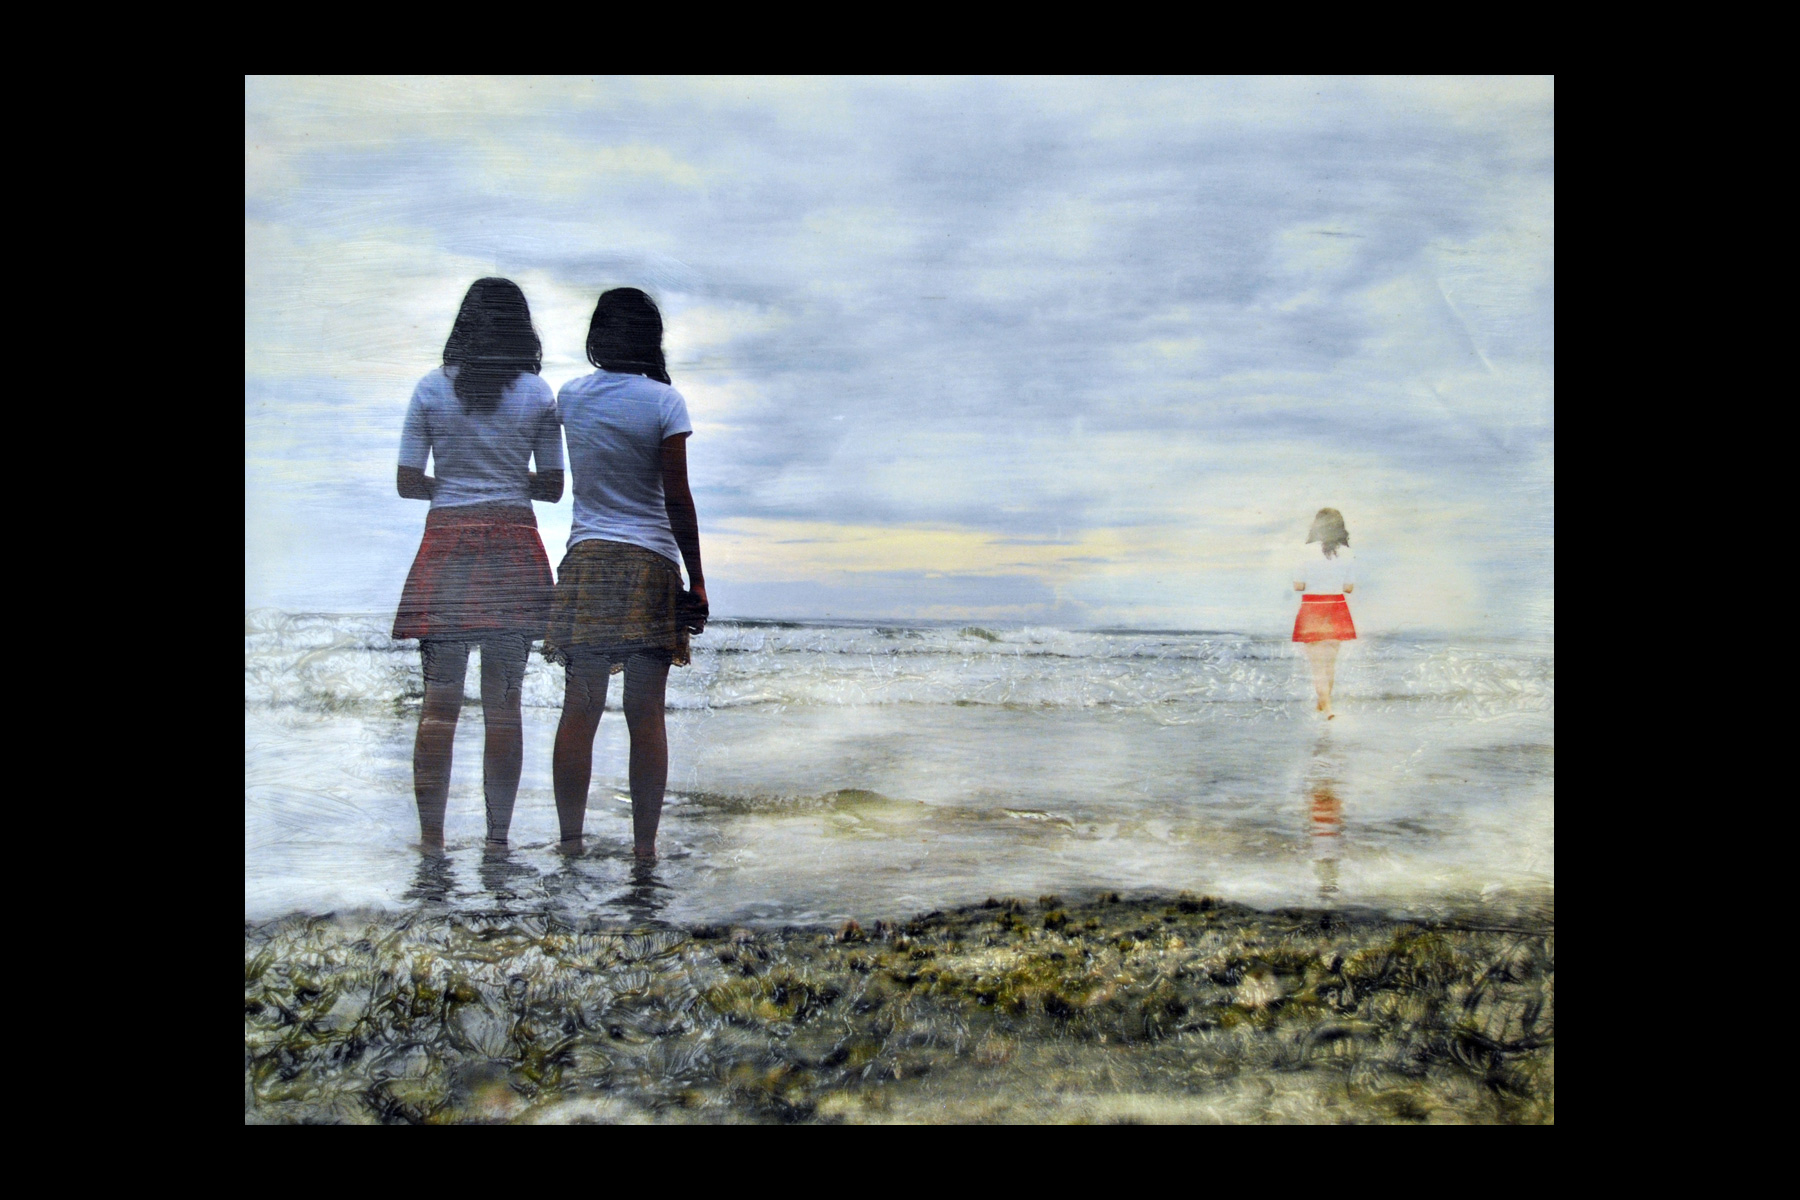 Two girls looking at a mirage